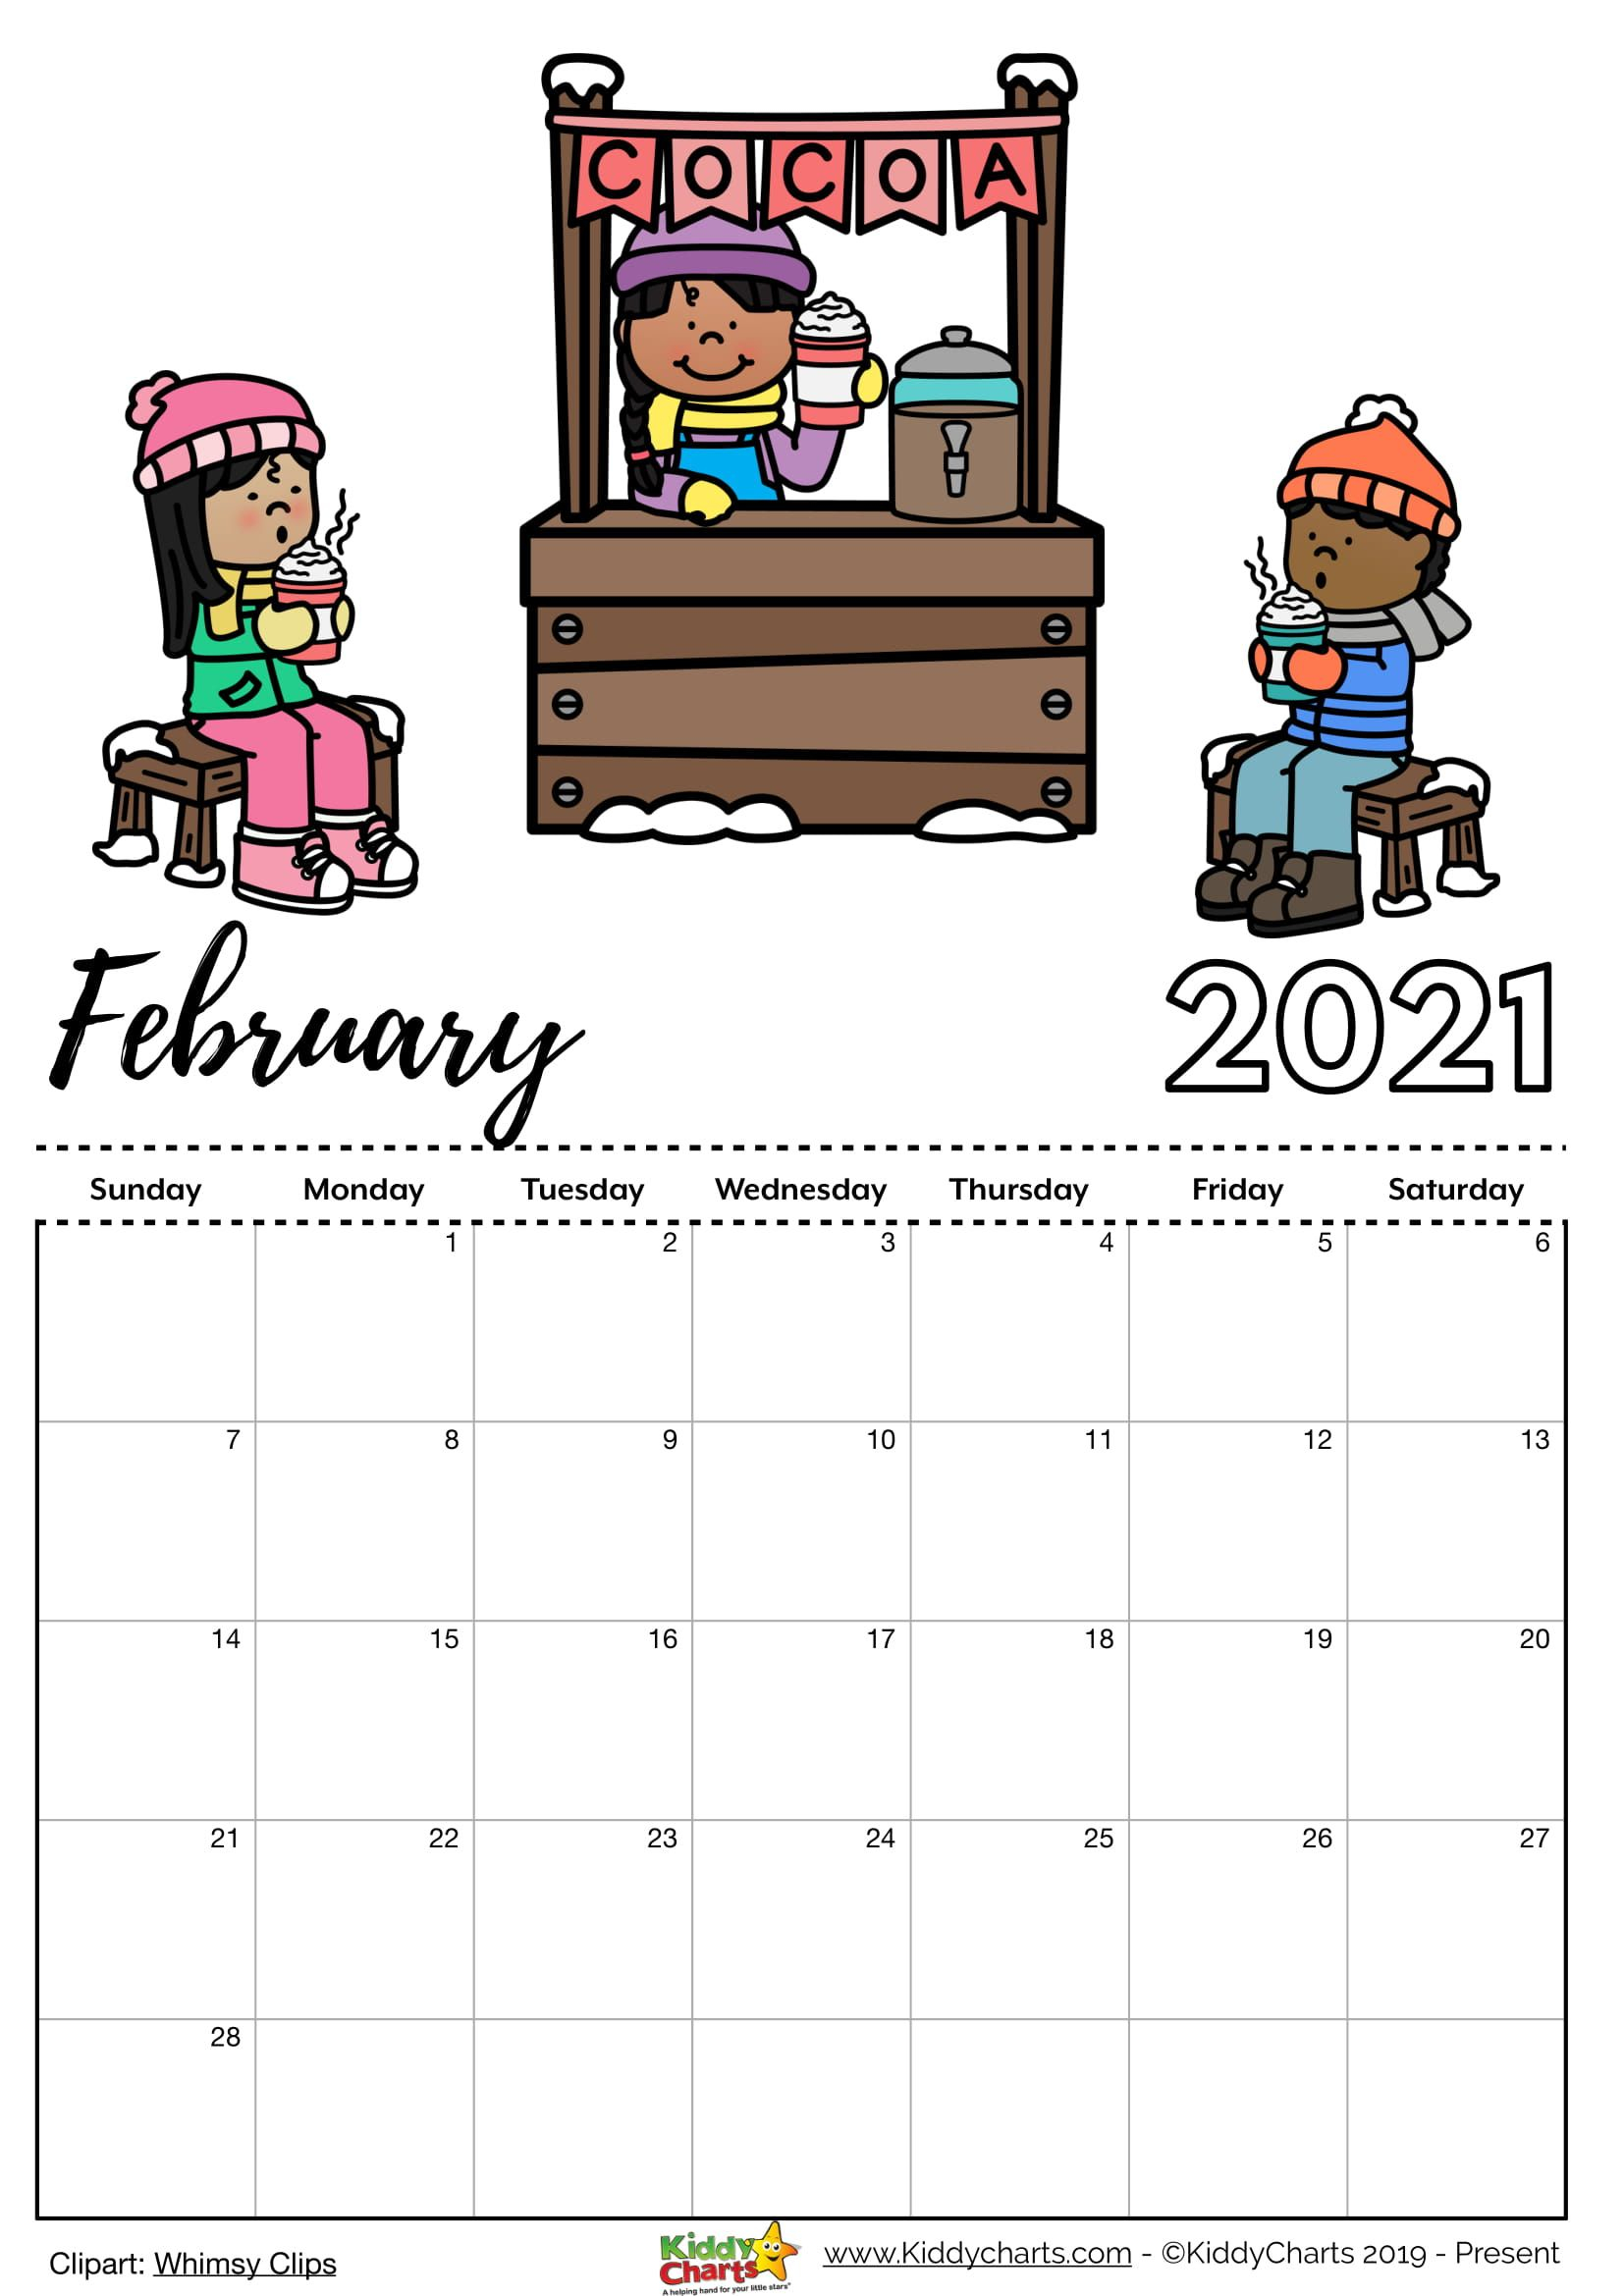 Check Our New Free Printable 2021 Calendar! In 2020 | Kids